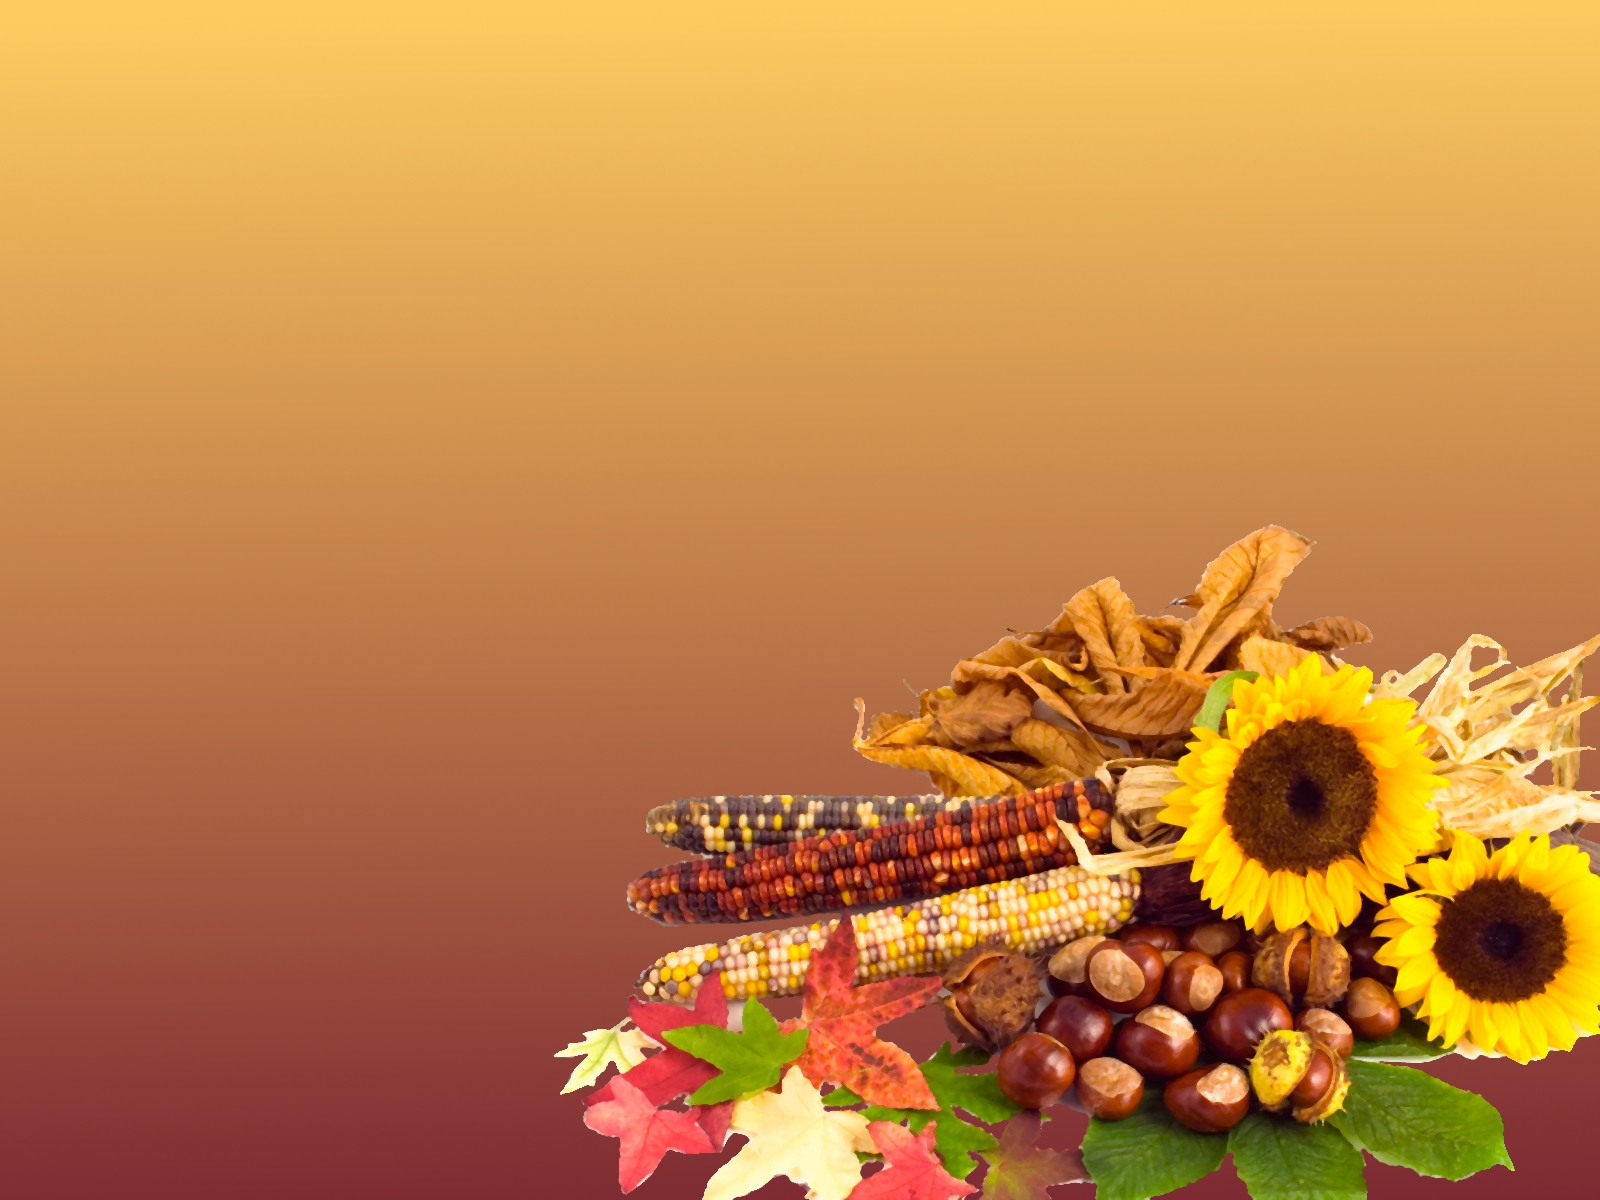 Thanksgiving background wallpaper 1600x1200 79370 - Desktop wallpaper 1600x1200 ...